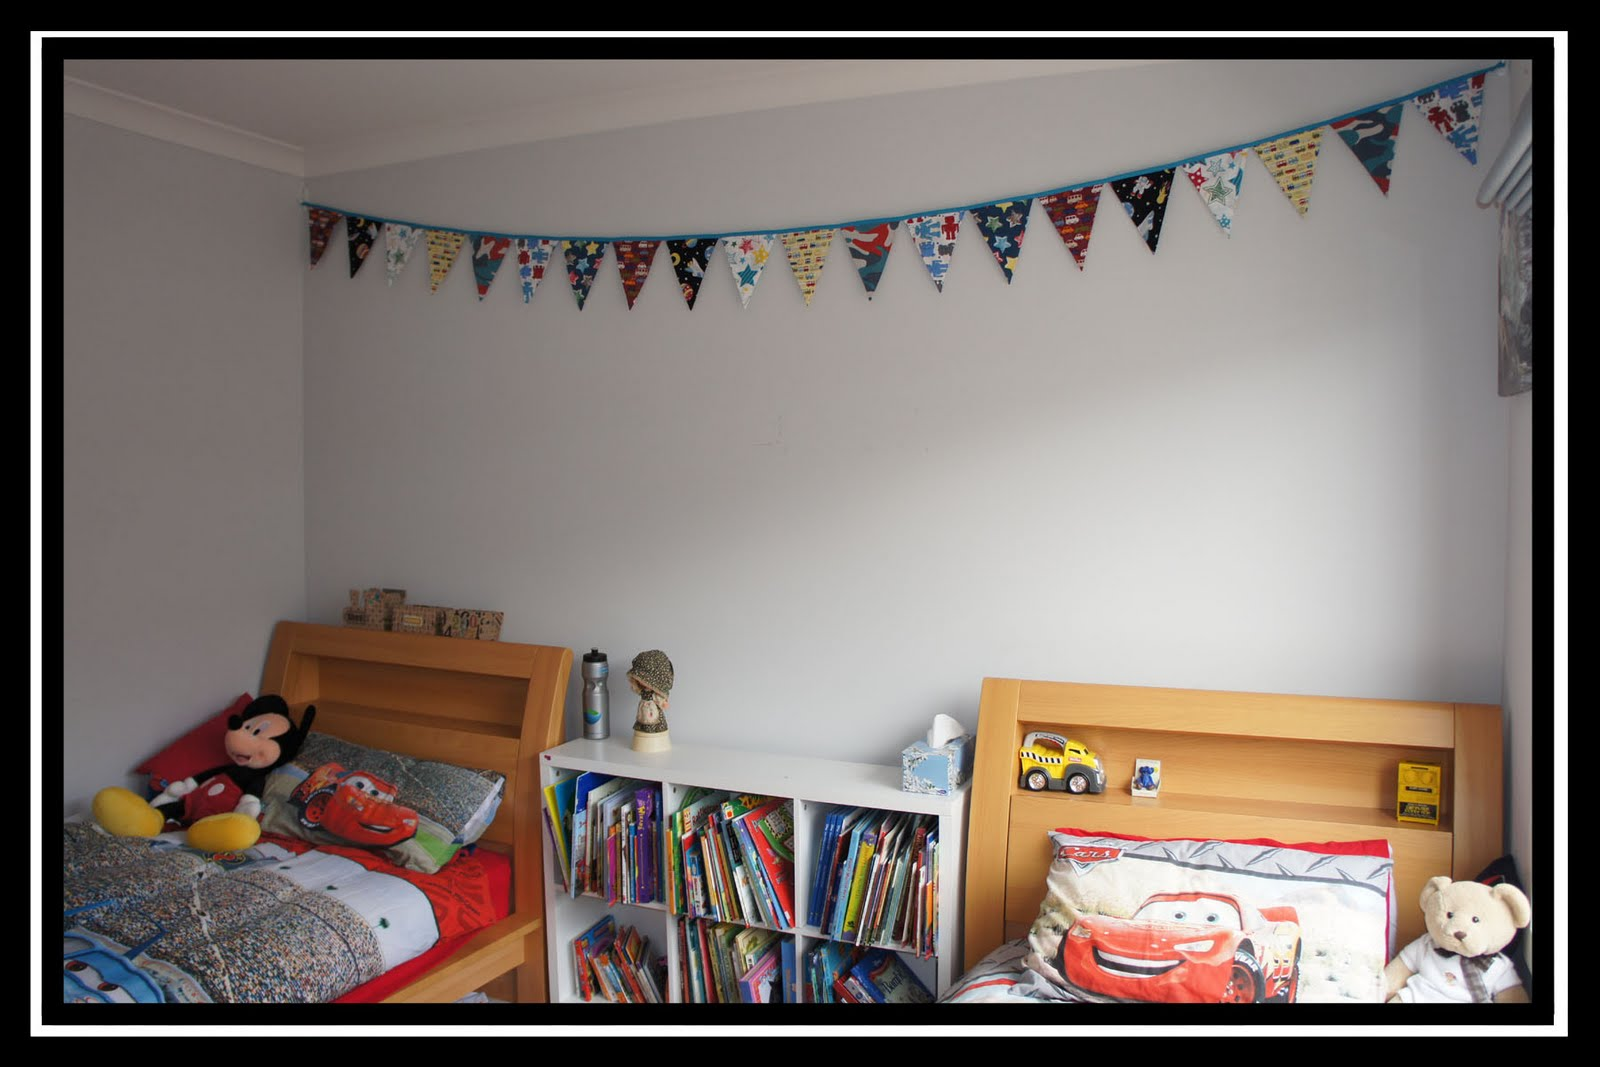 Baby bedroom Nursery room Girl Nursery Nursery decor Nursery Bunting Wall decor Duck nursery Vintage baby boy nursery Master bedroom Clothes Line Bunting / Garland Refinished Furniture Gender Neutral Nurseries Baby Room Girls Kids rooms Kid Bedrooms Changing Tables Child Room Changing Station Day Care Baby Changing Tables Paint For Walls Wall.